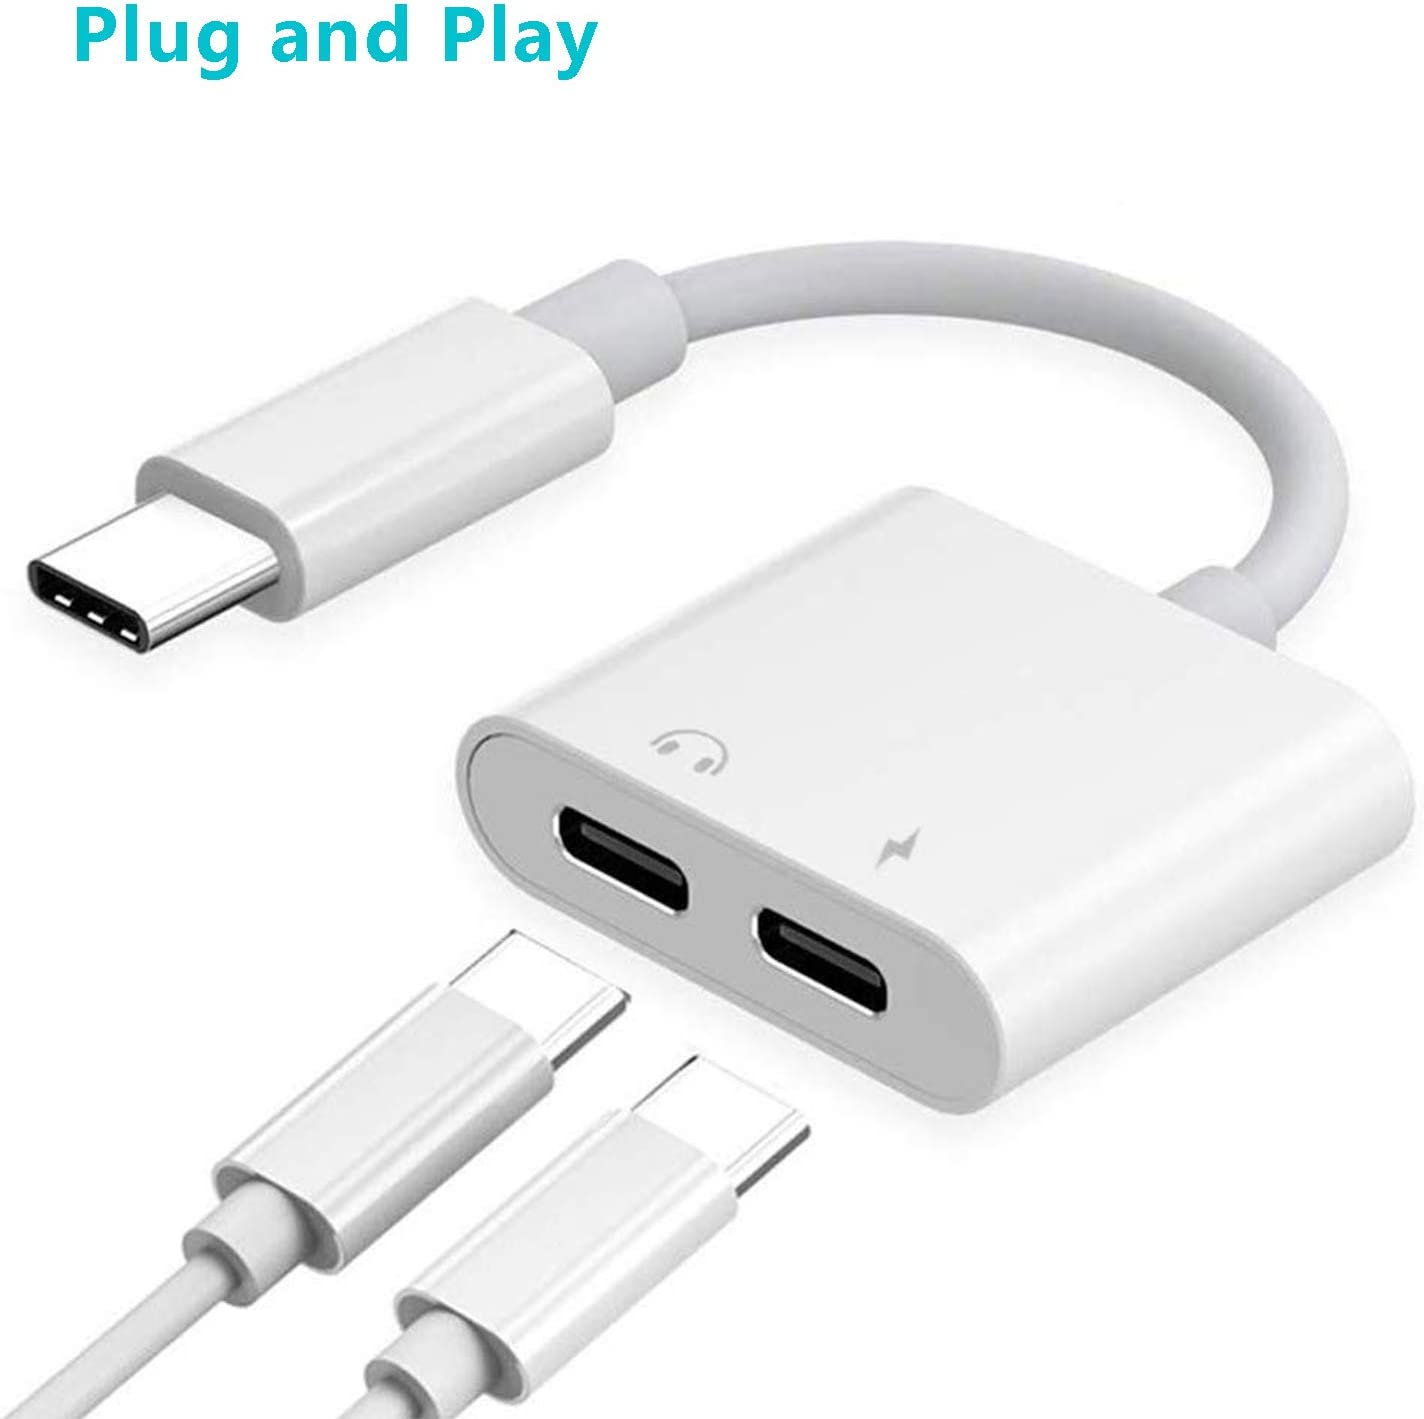 HEEWEEYOO 2 in 1 Type C Headphone Audio /& Charge Adapter USB C Splitter Audio and Charger Compatible with Google Pixel 2//2 XL//3//3 XL Samsung Galaxy Note 10//10 Plus//A80//A8S//S8//S9-White